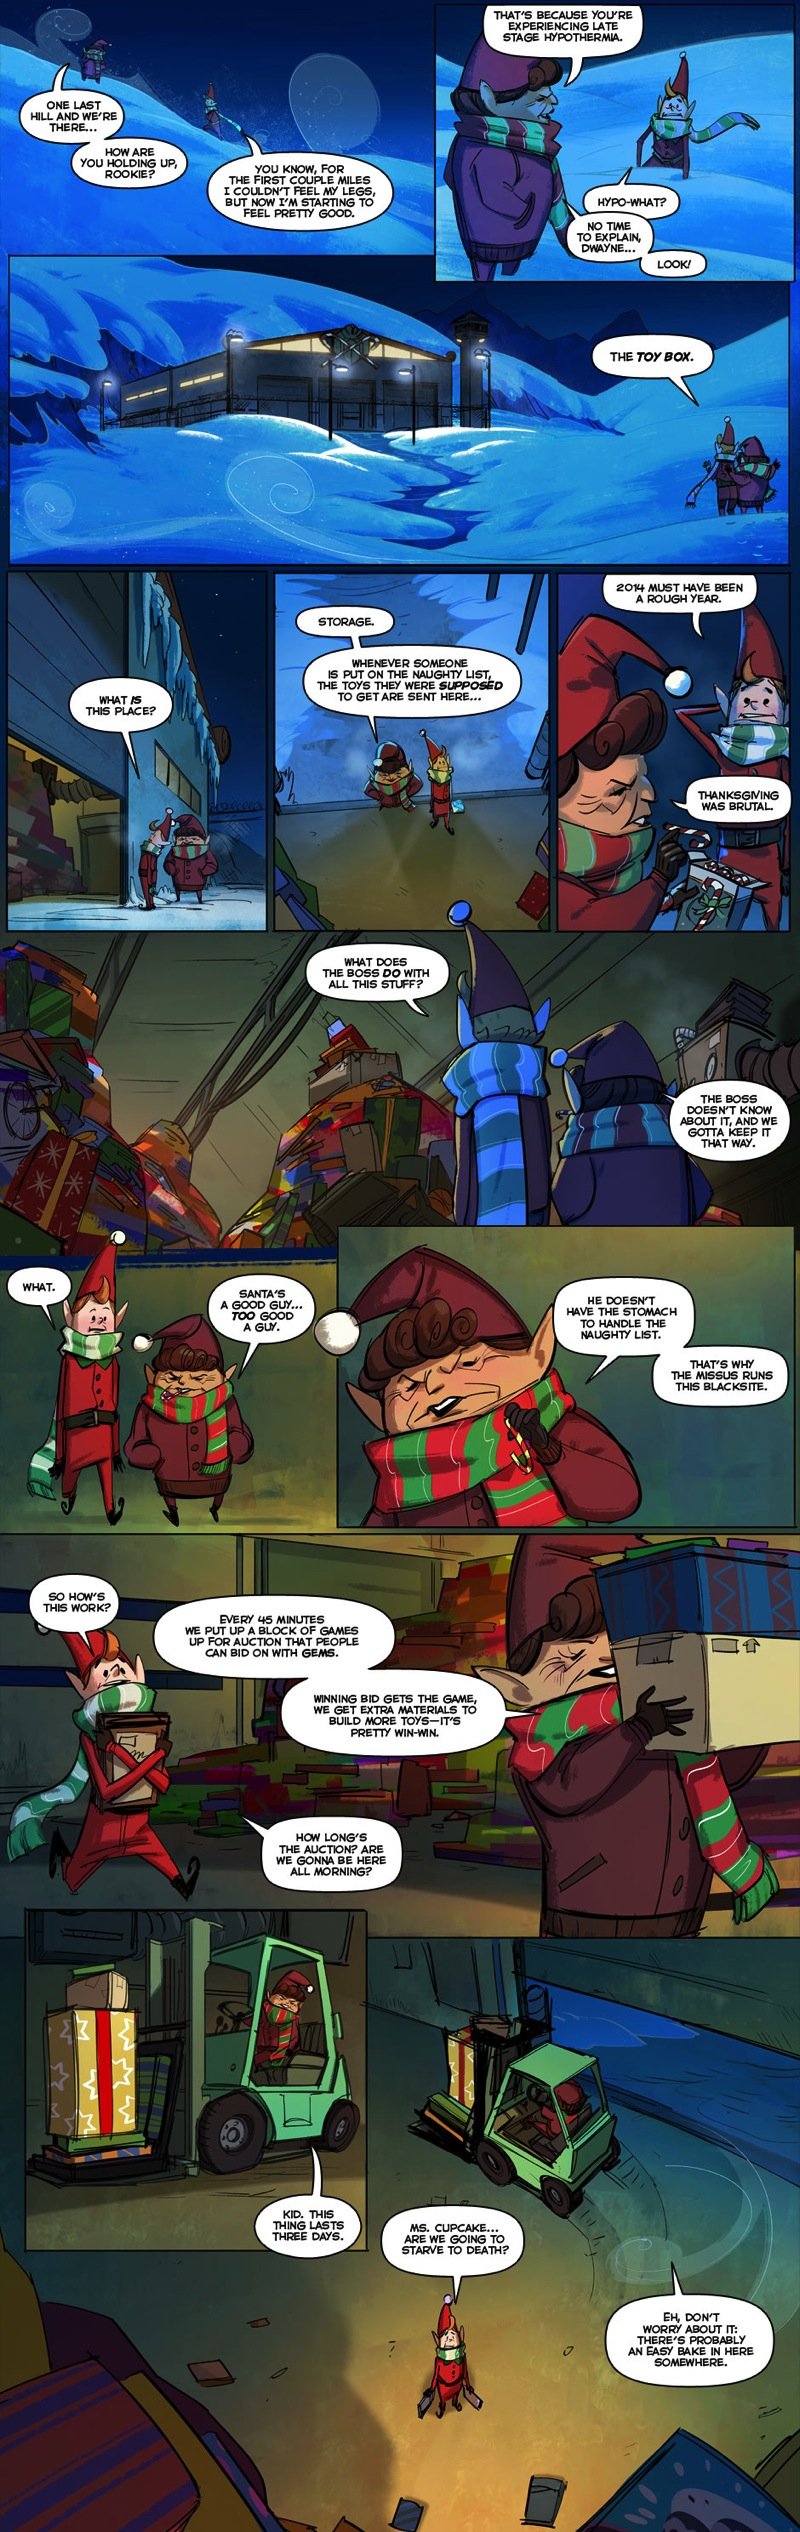 Holiday auction comic